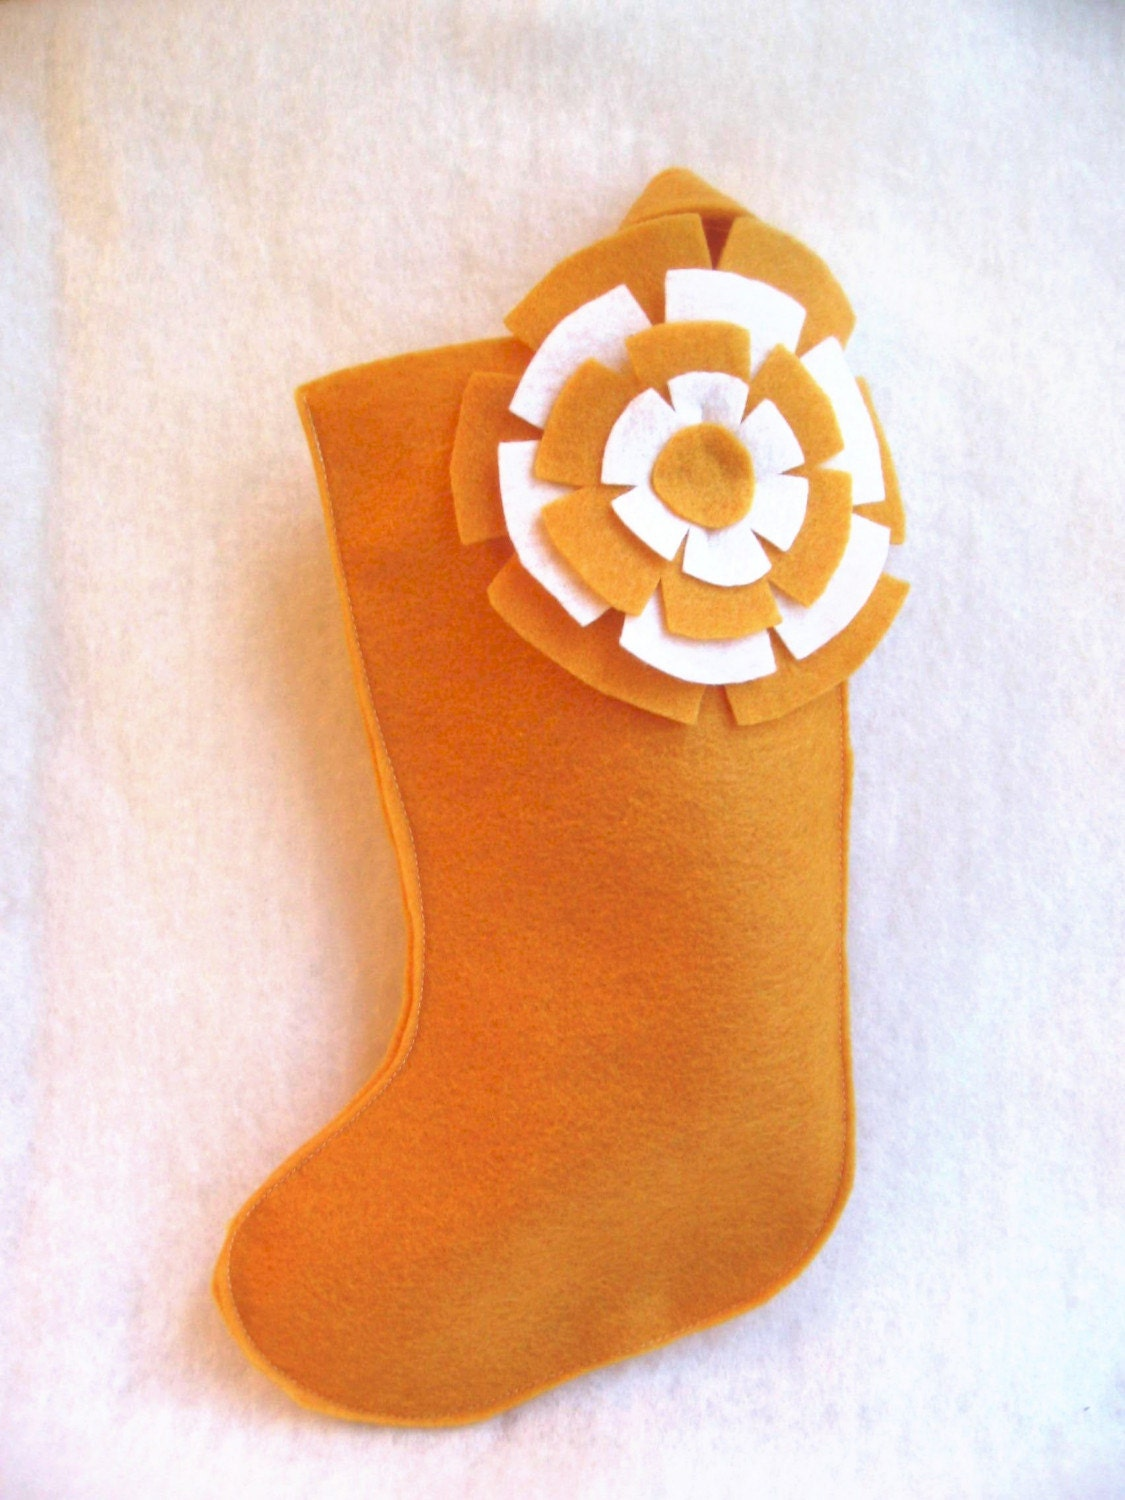 rikrak Christmas...golden mustard yellow and white knickknack flower felt stocking